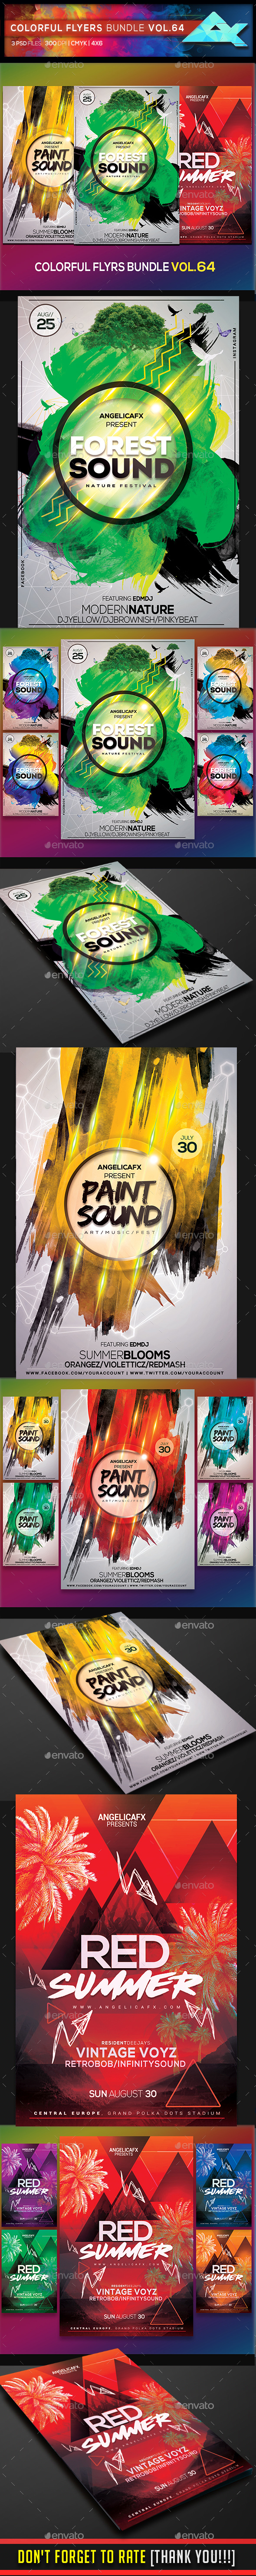 Colorful Flyers Bundle Vol. 64 - Events Flyers